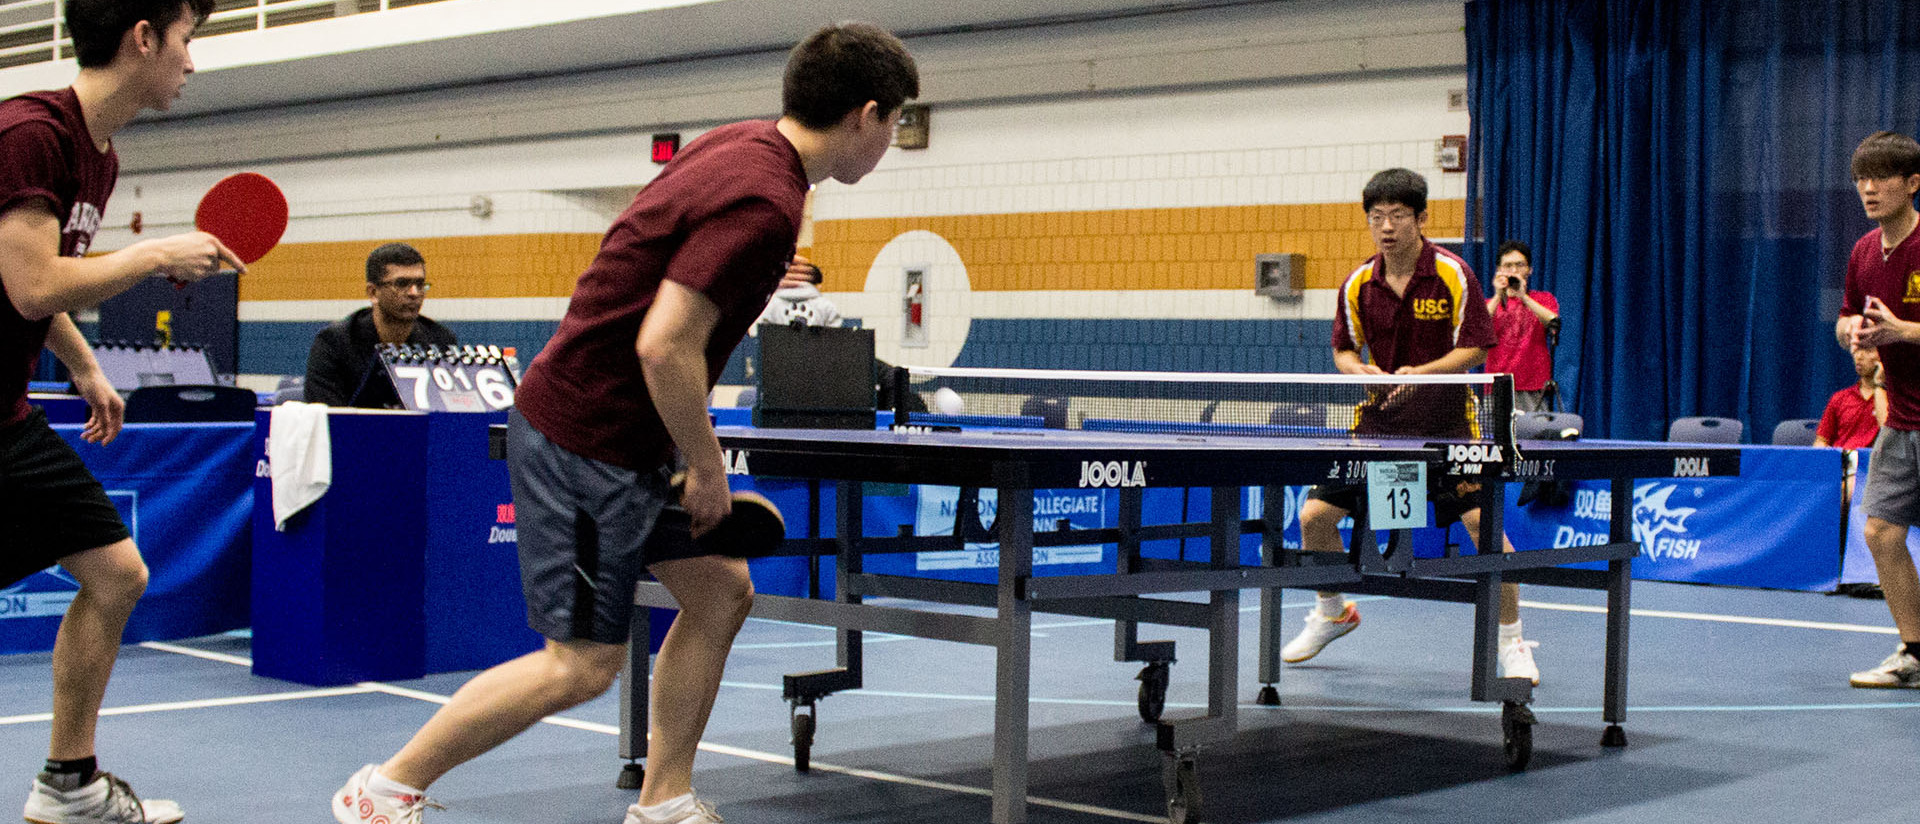 Participants in 2015 Collegiate Table Tennis National Championships at UW-Eau Claire